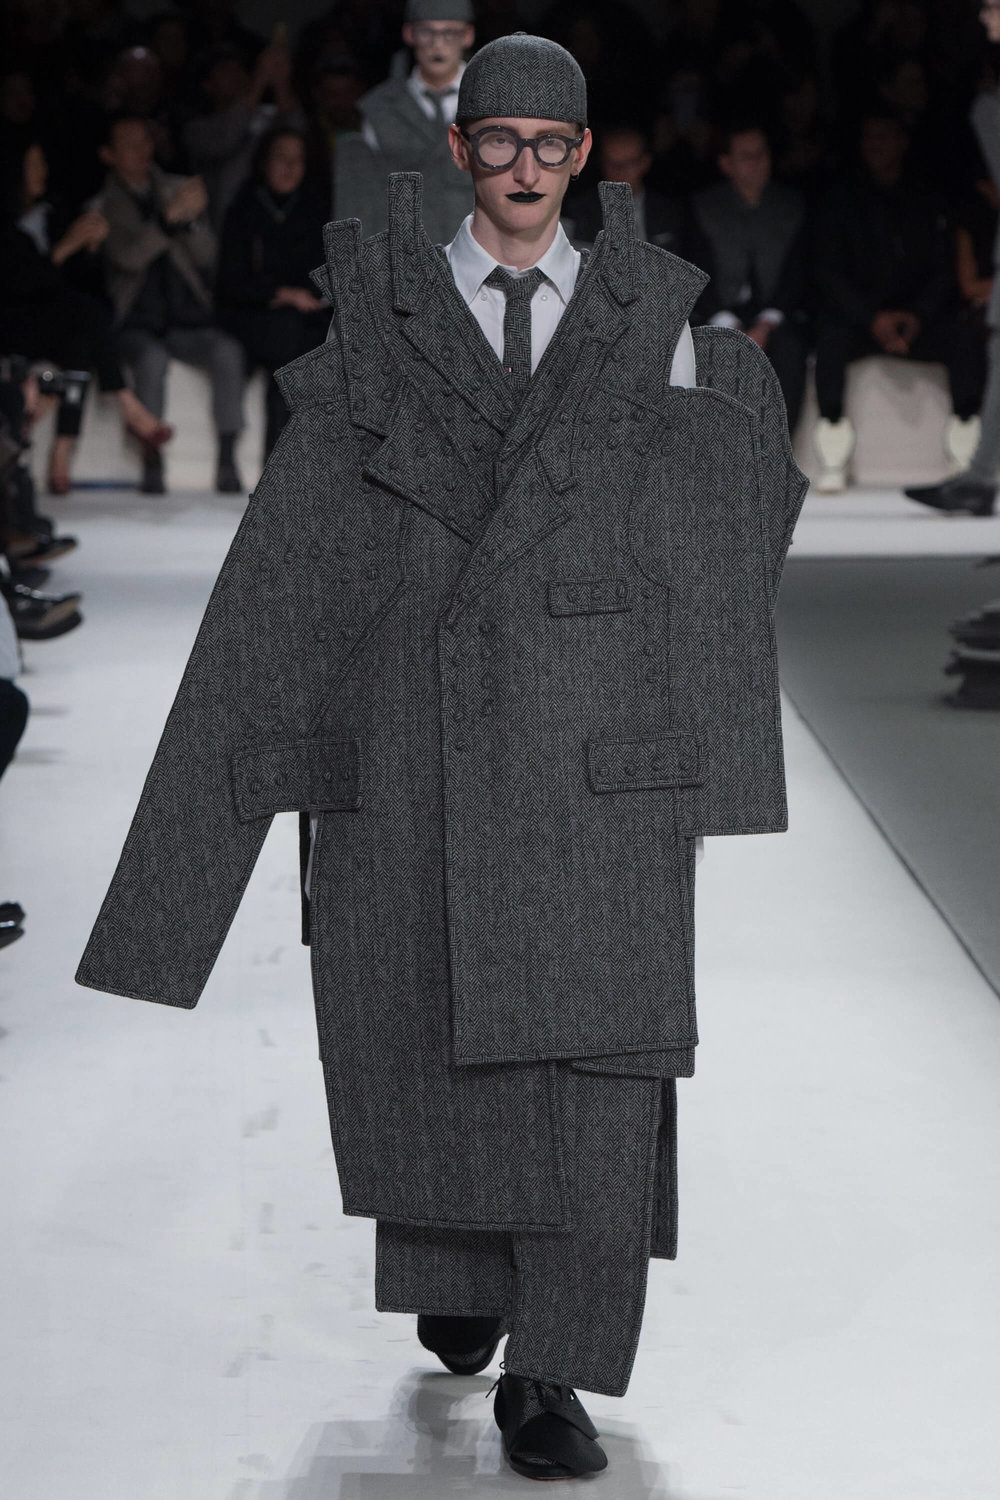 Thom-Browne-Never-Fails-to-Amaze-Thatsitmag-Thatsitmagazine-GraceBrookes-Paris-Fashion-week7.jpg